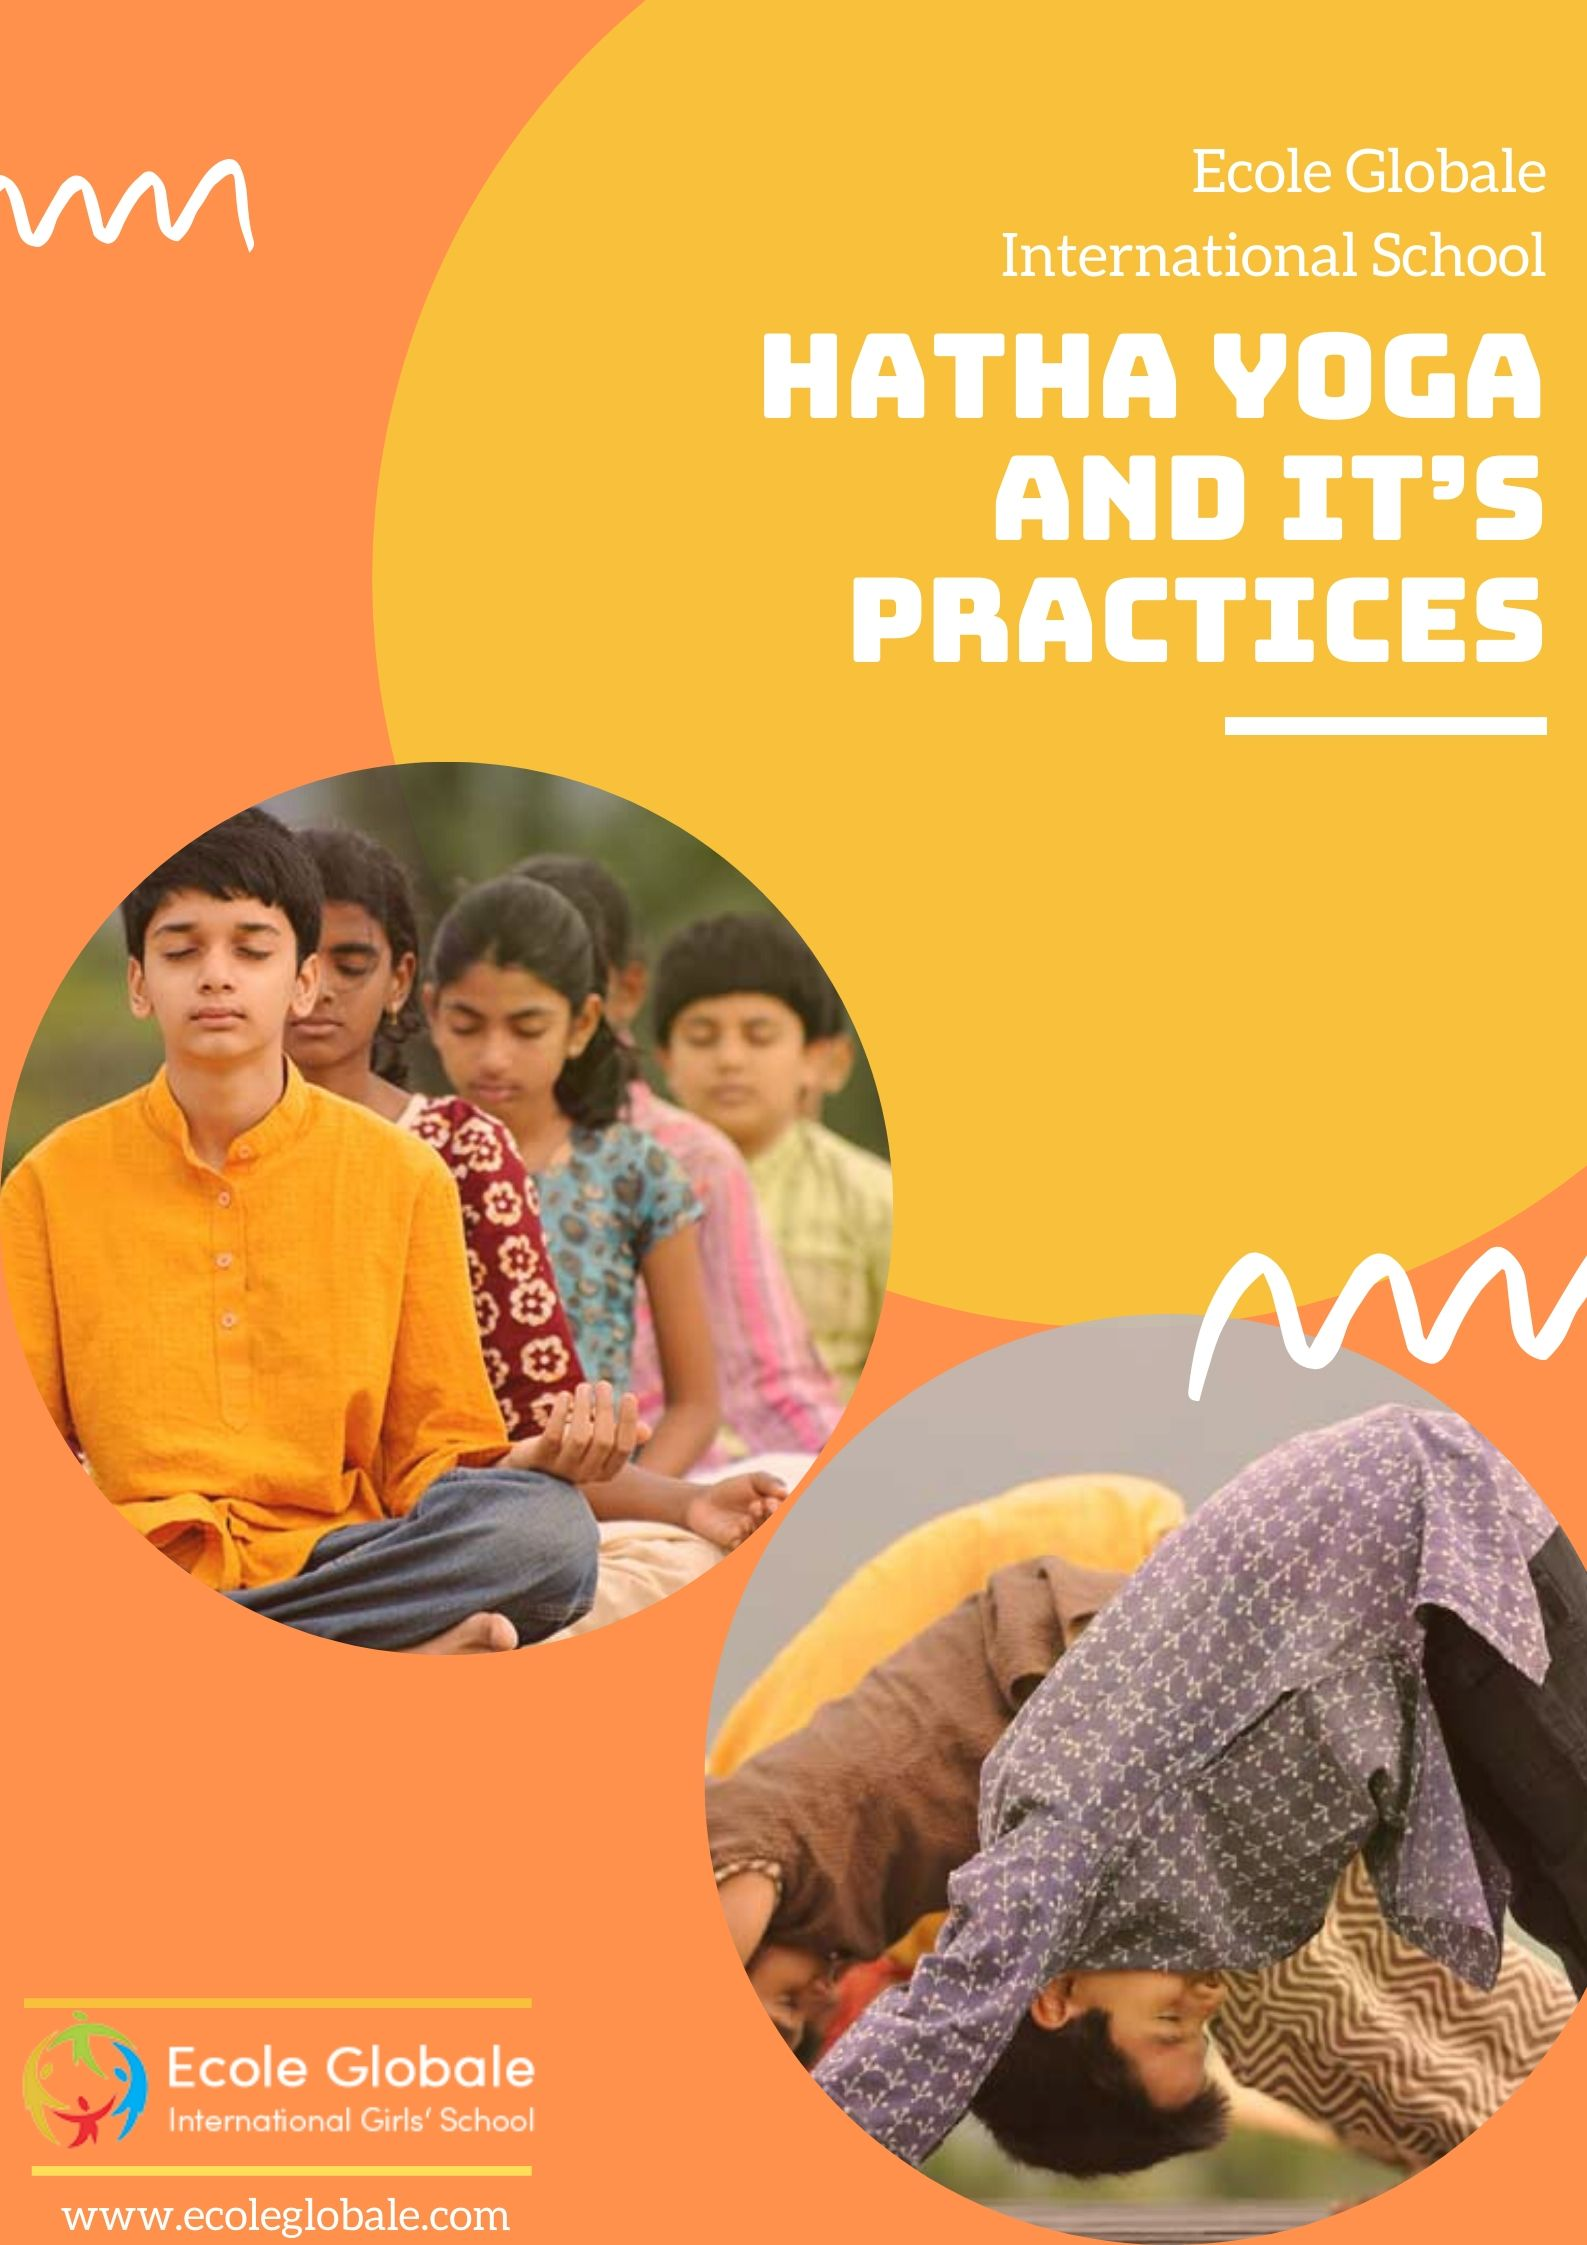 Hatha yoga and it's practices, benefits – A guide for Students